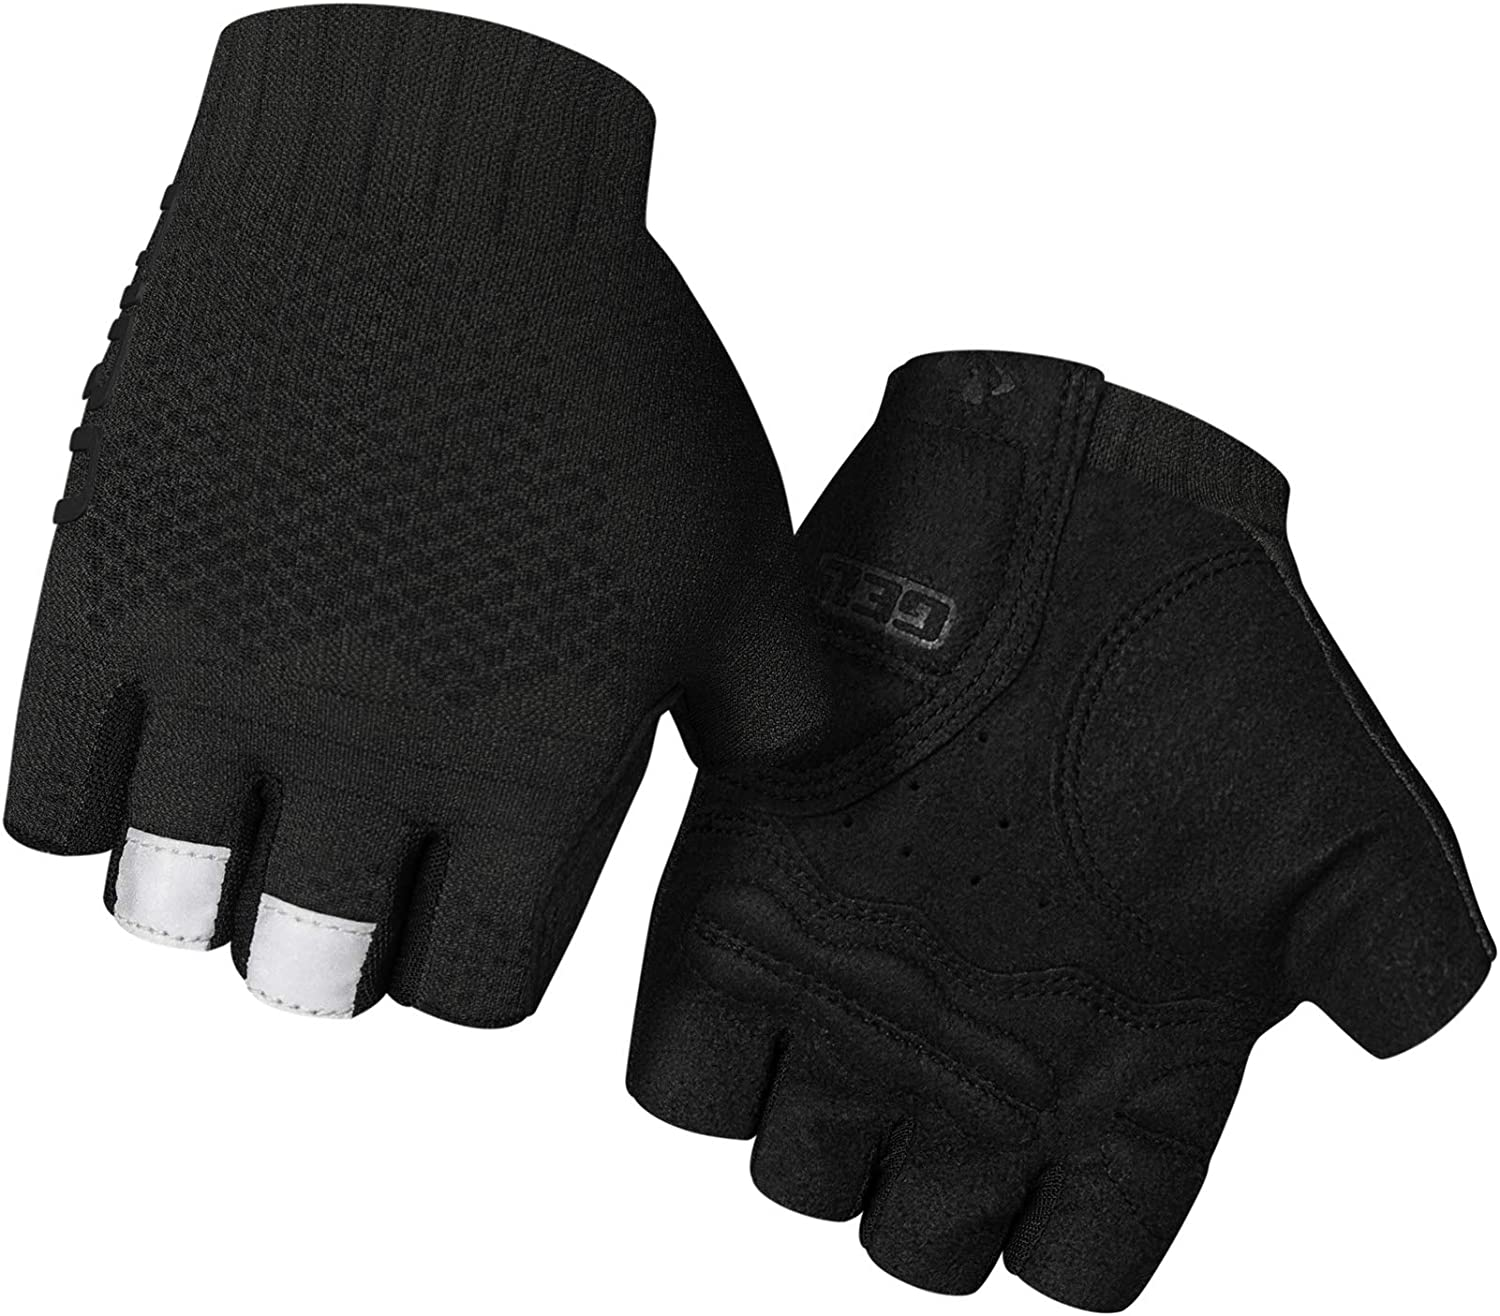 Giro Xnetic Super beauty product restock quality top! Translated Road Cycling Men's Gloves